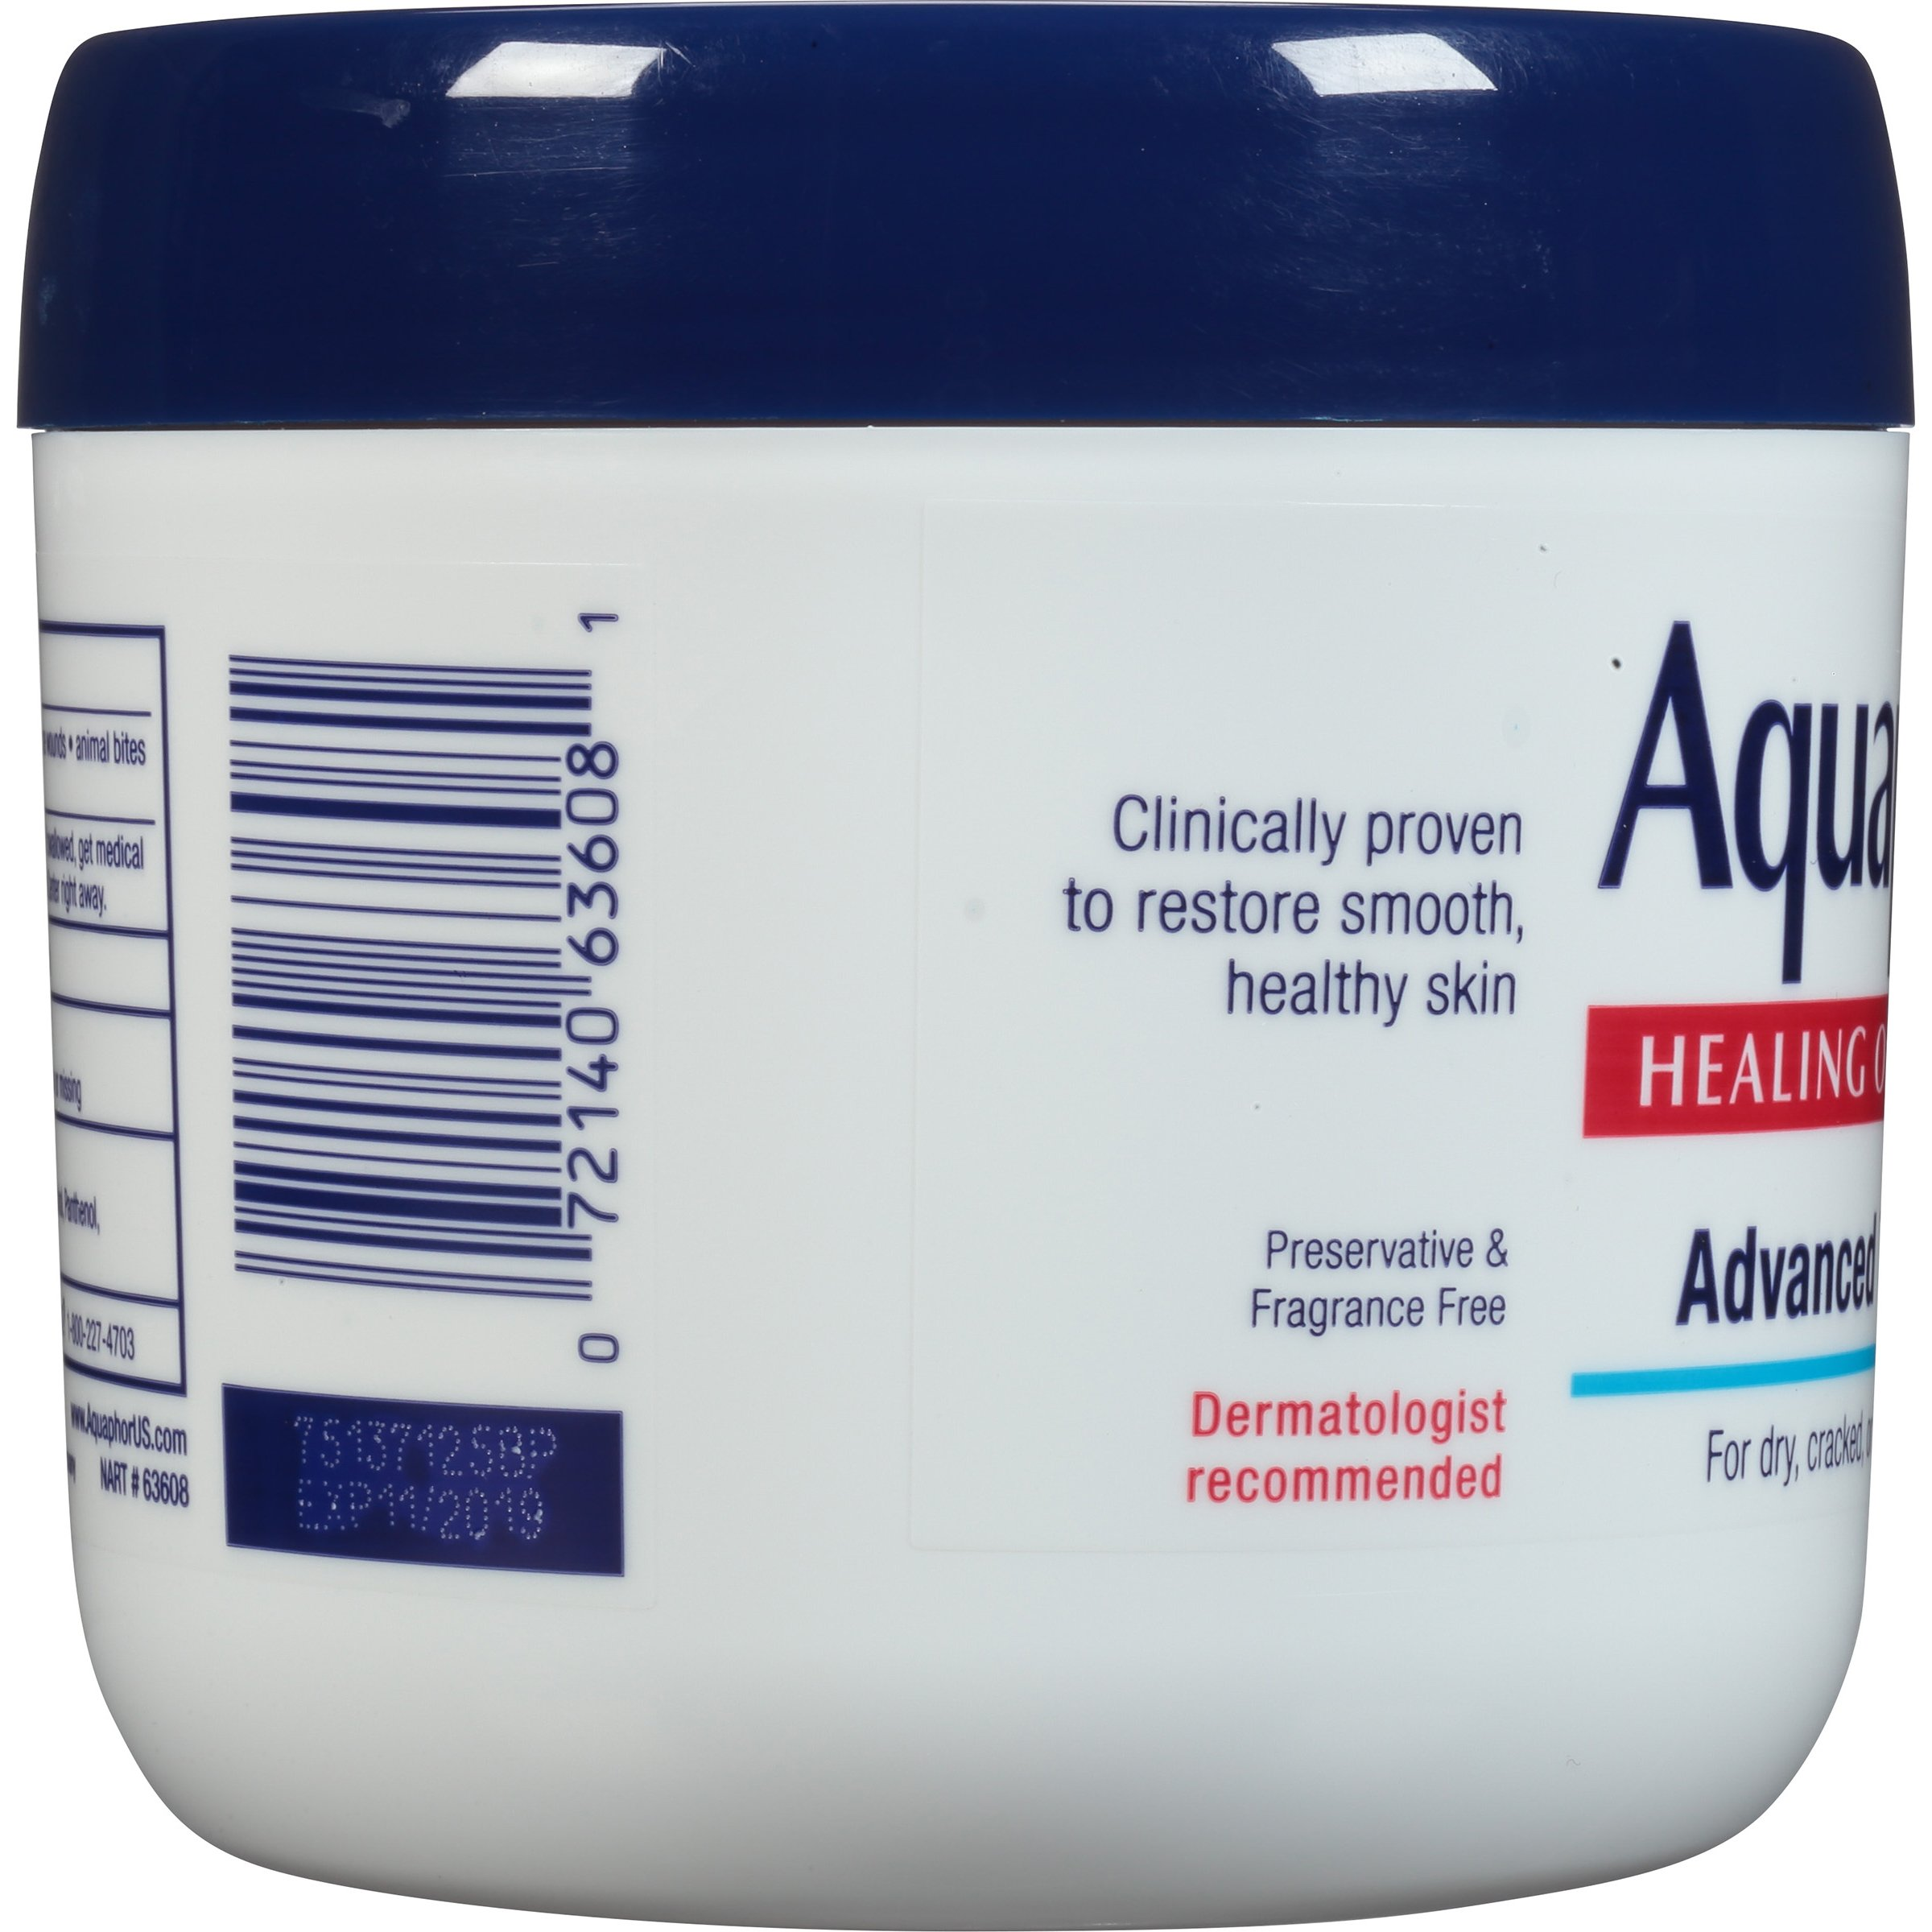 Aquaphor Healing Ointment,Advanced Therapy Skin Protectant 14 Ounce (Pack May Vary) by Aquaphor (Image #4)